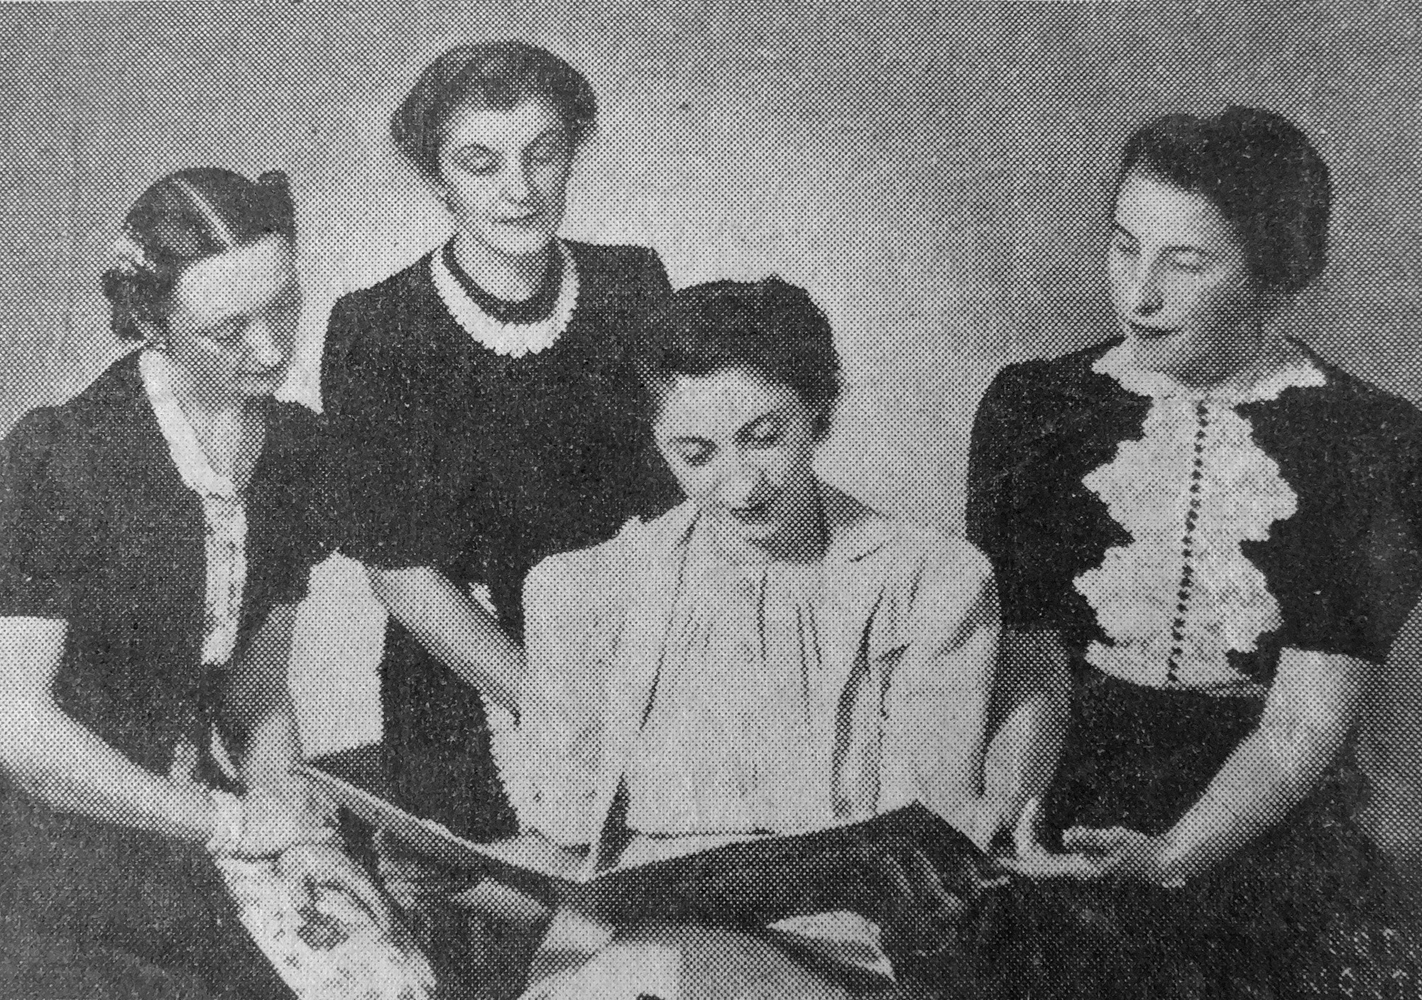 Three female solo pianists, from left to right, Gilberte Martin, Edna Marie Hawkin and Olga Guilemof and Ethel Stark